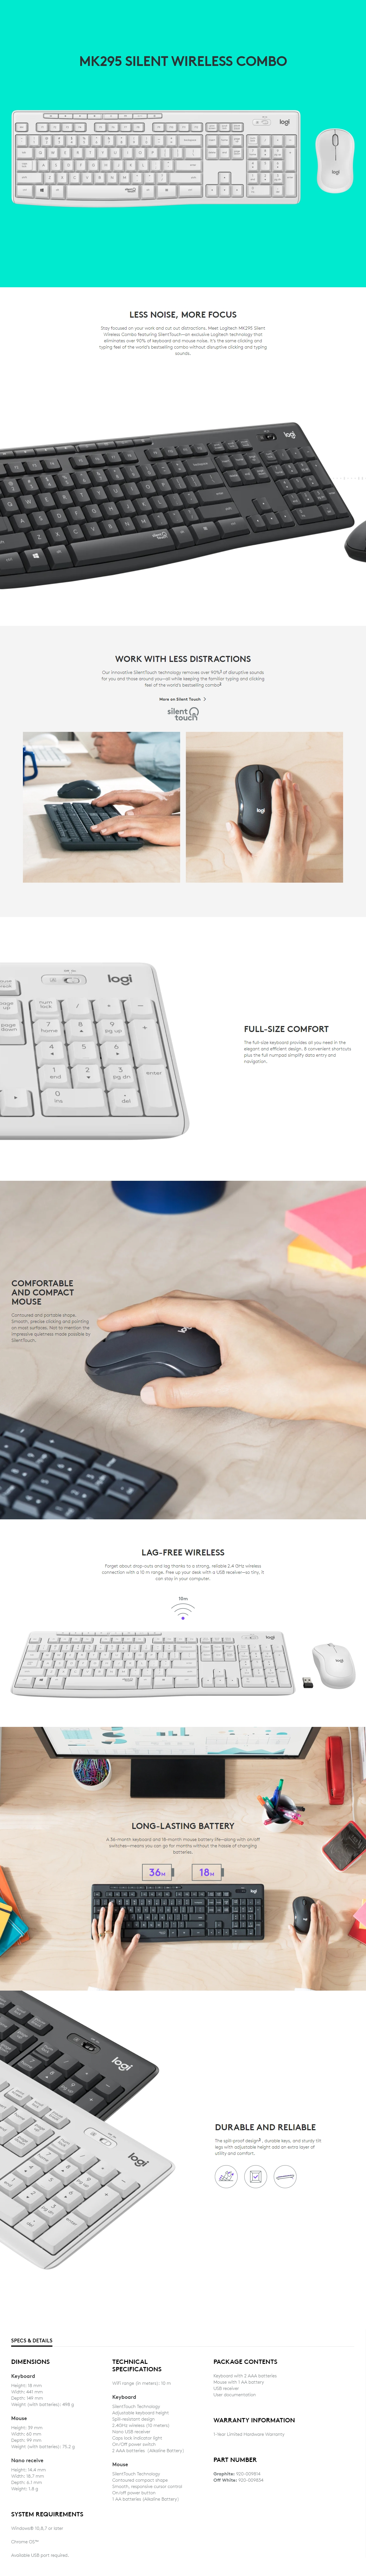 A large marketing image providing additional information about the product Logitech MK295 Silent Wireless Desktop Combo - Graphite - Additional alt info not provided